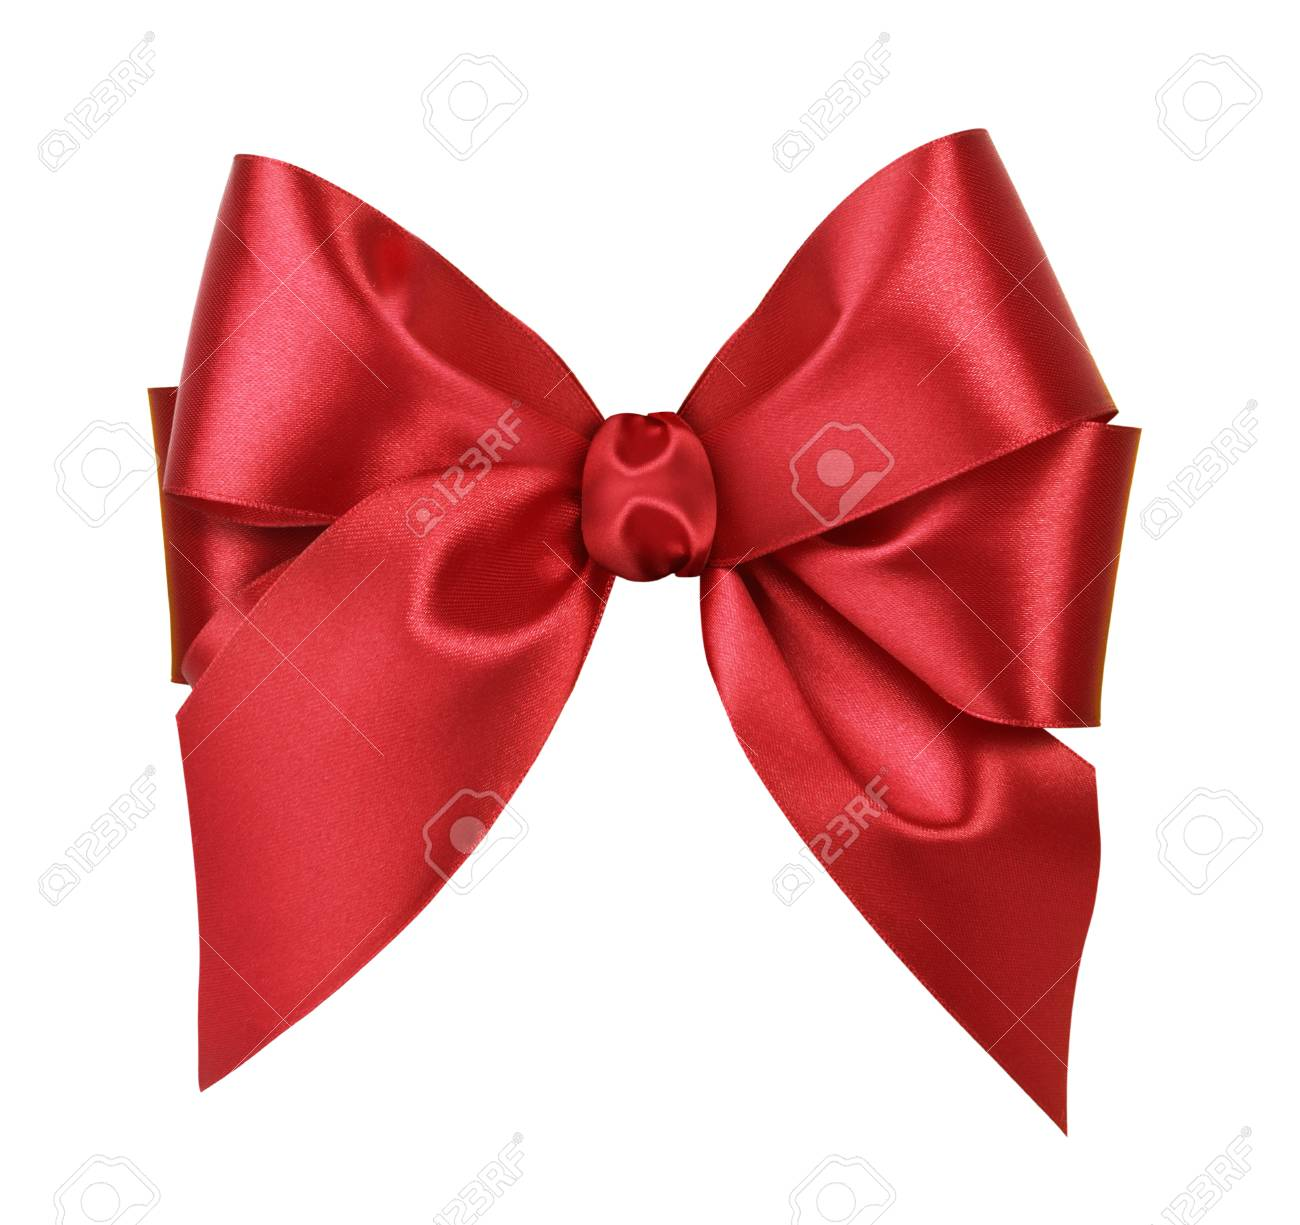 Red satin gift bow. Isolated on white background - 37634021